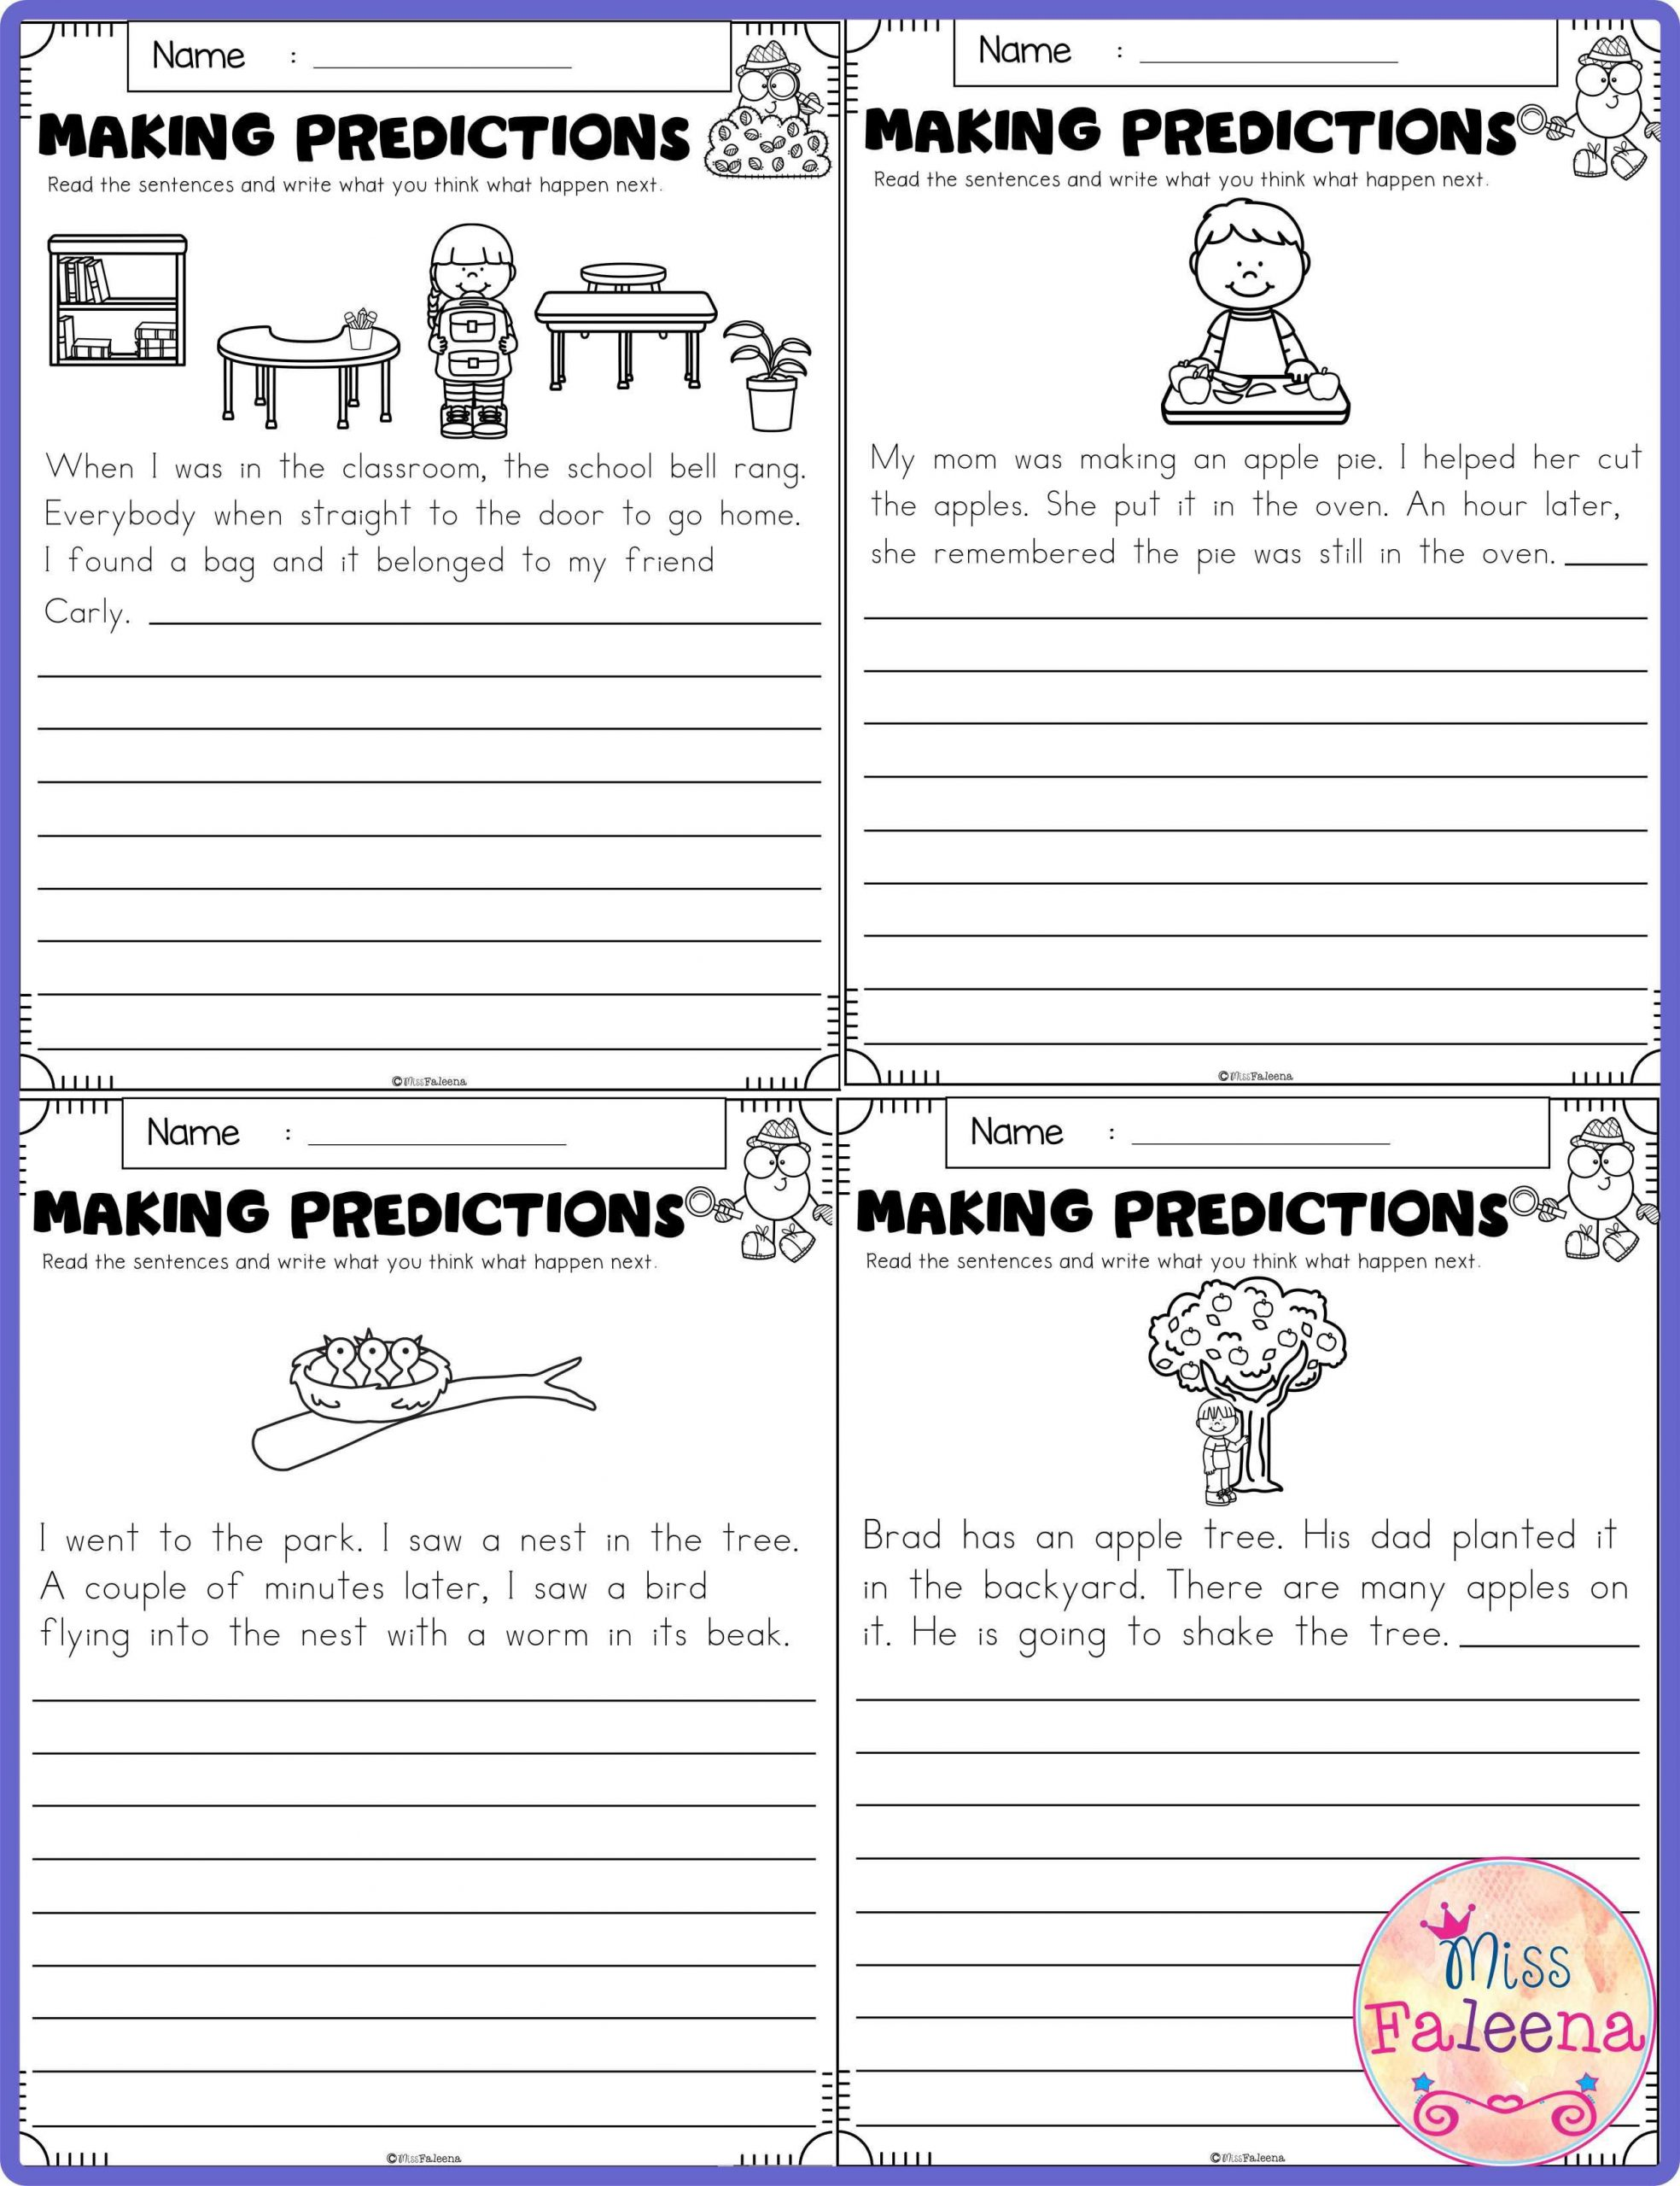 Predictions Worksheets 3rd Grade September Making Predictions In 2020 with Images